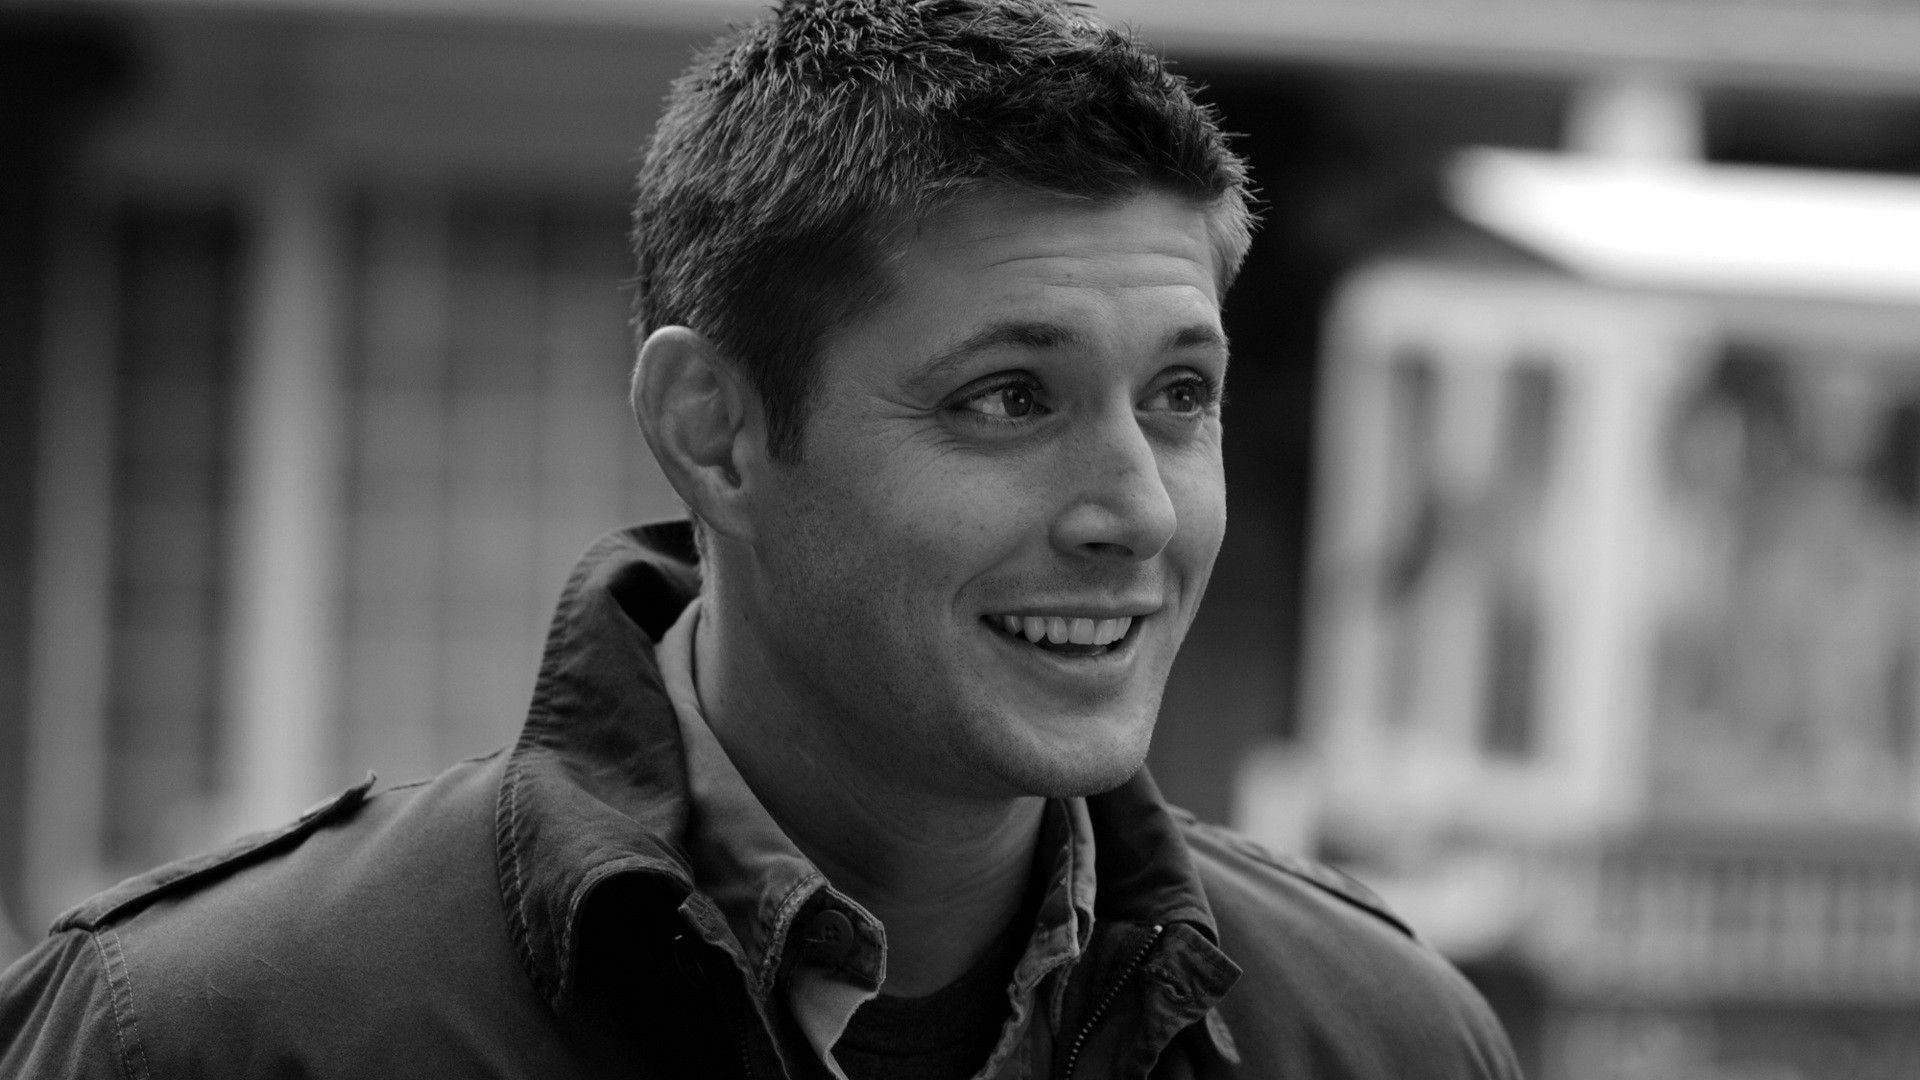 How Well Do You Know Dean From 'Supernatural'?